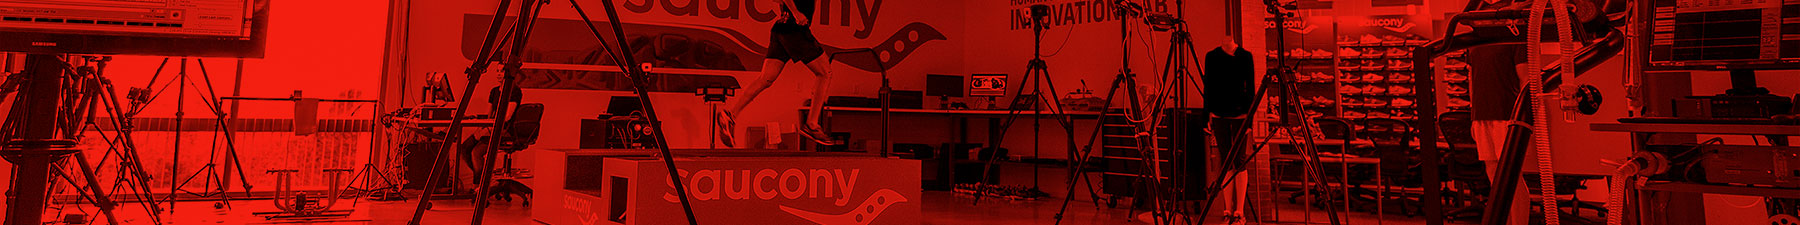 Apply to be a Saucony Product Tester. A man runs on a treadmill in the Saucony Testing Lab.